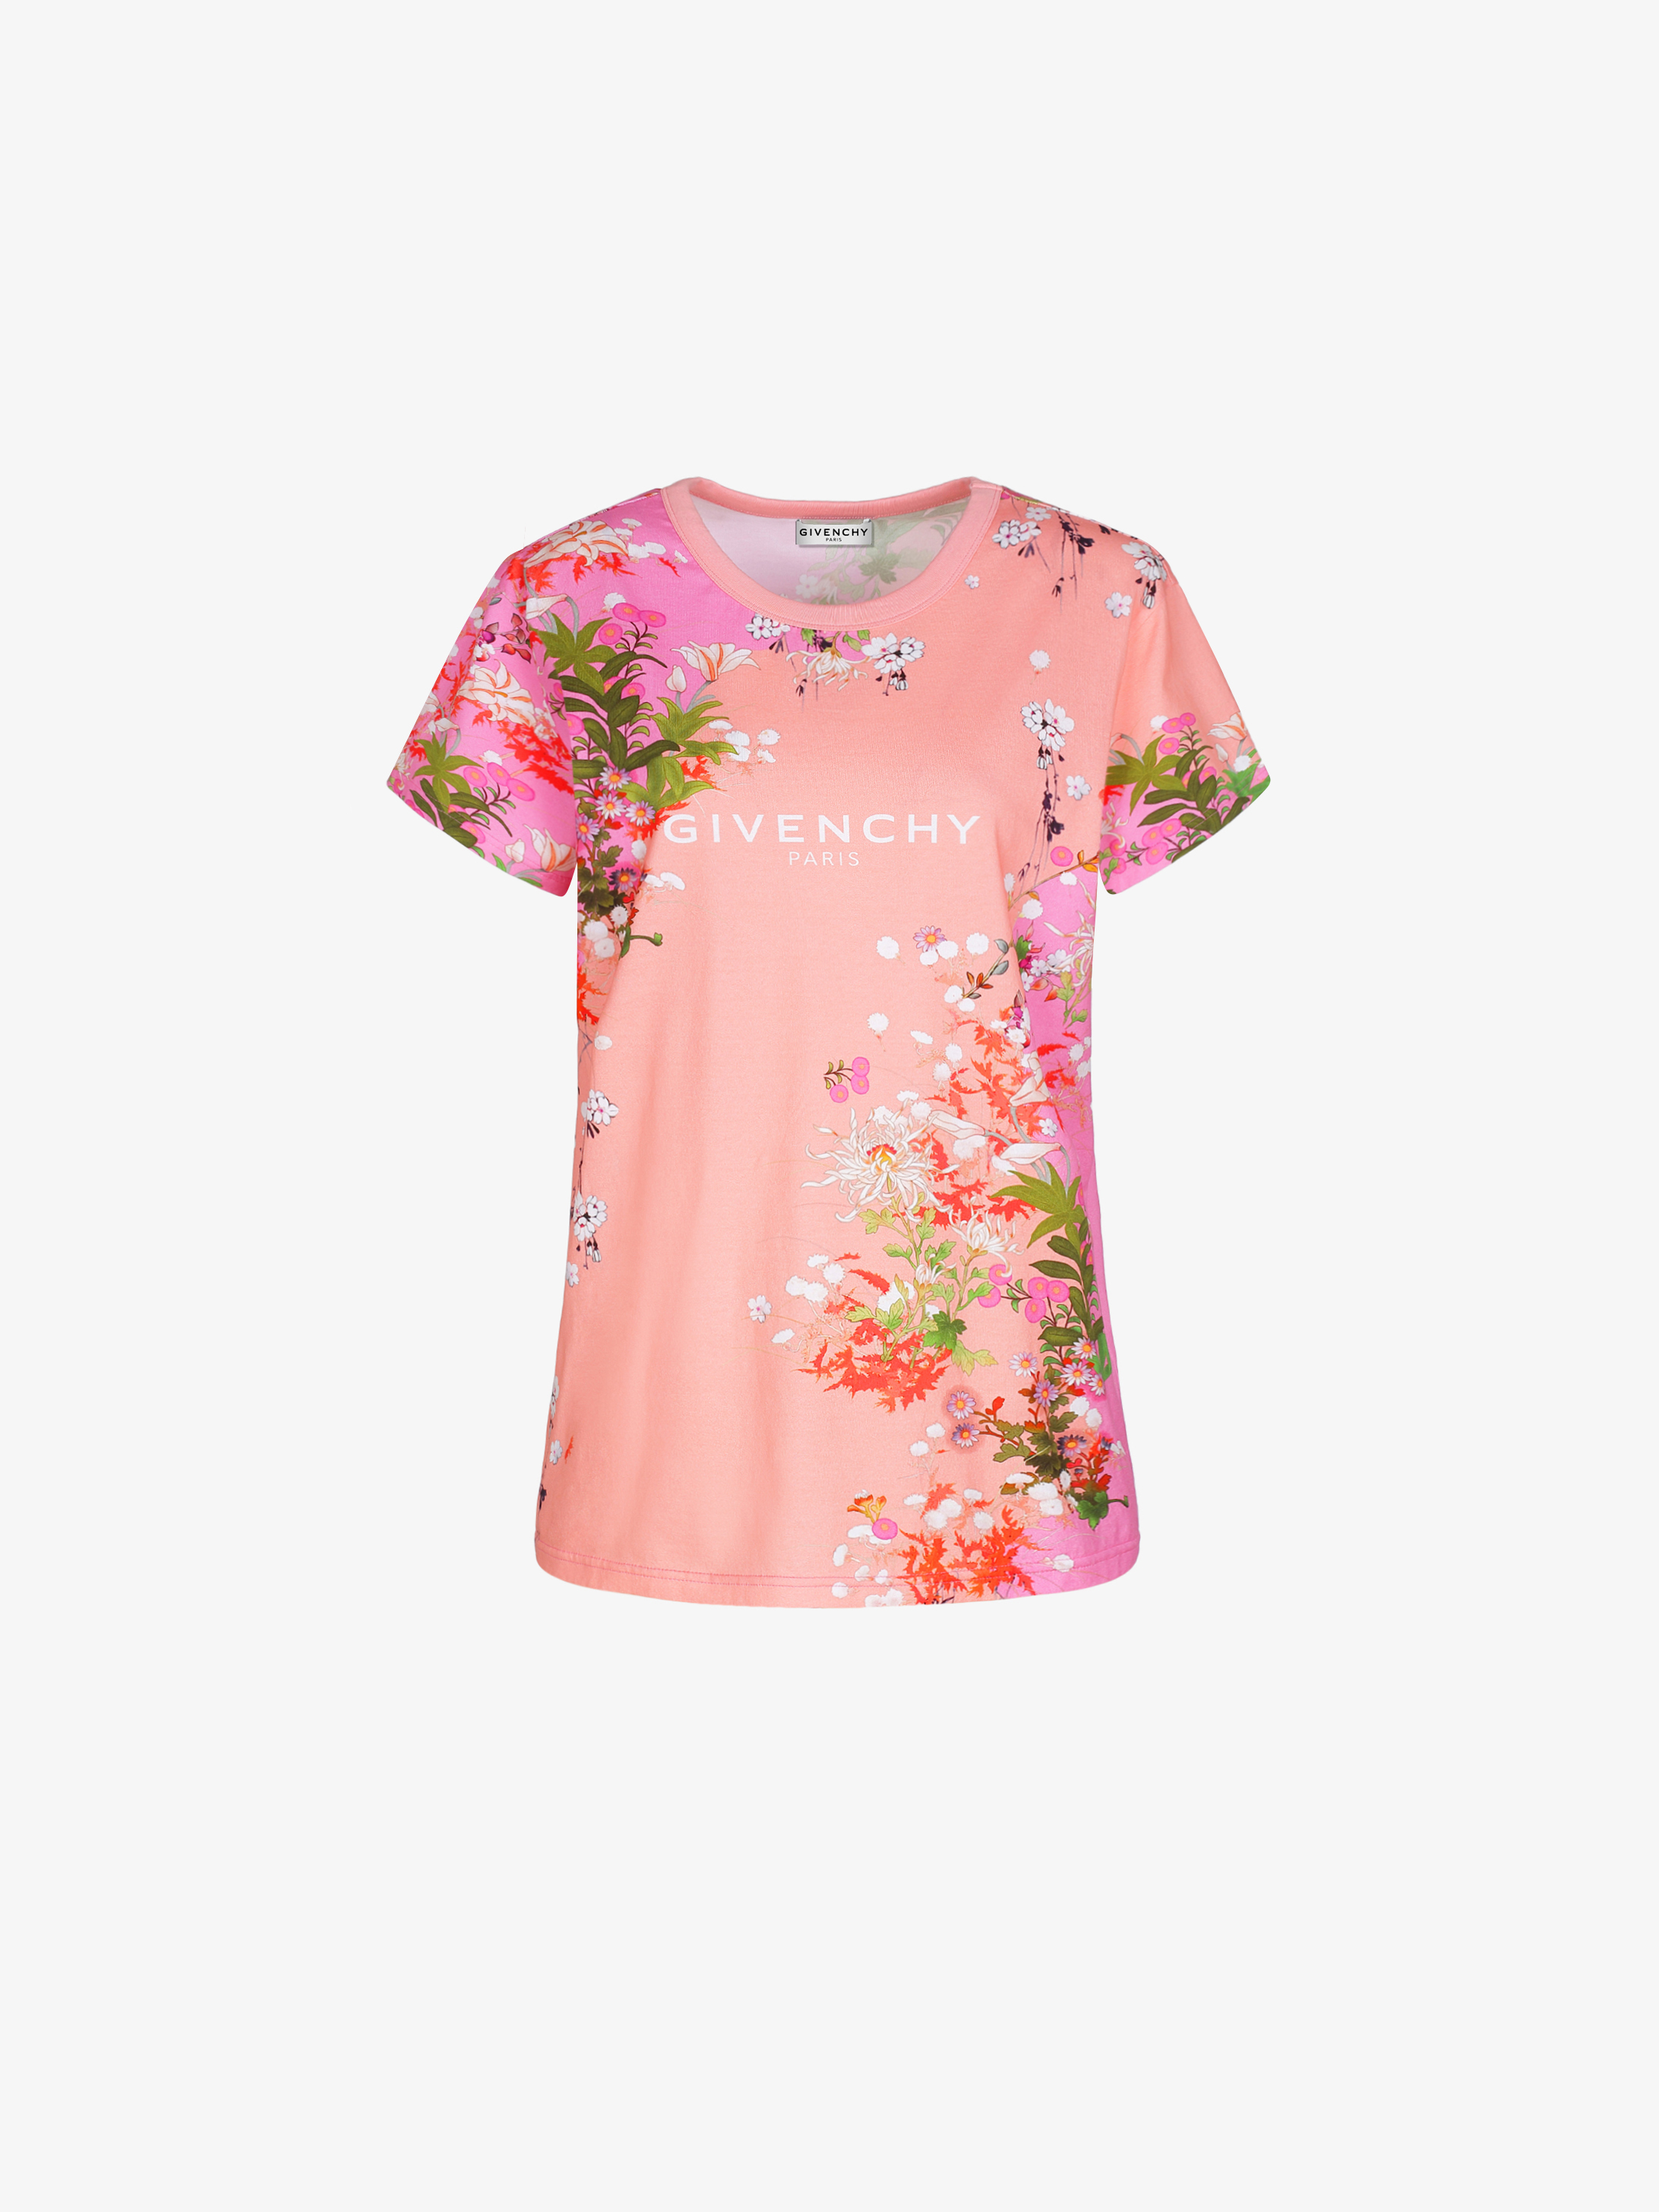 GIVENCHY PARIS floral printed slim fit t-shirt